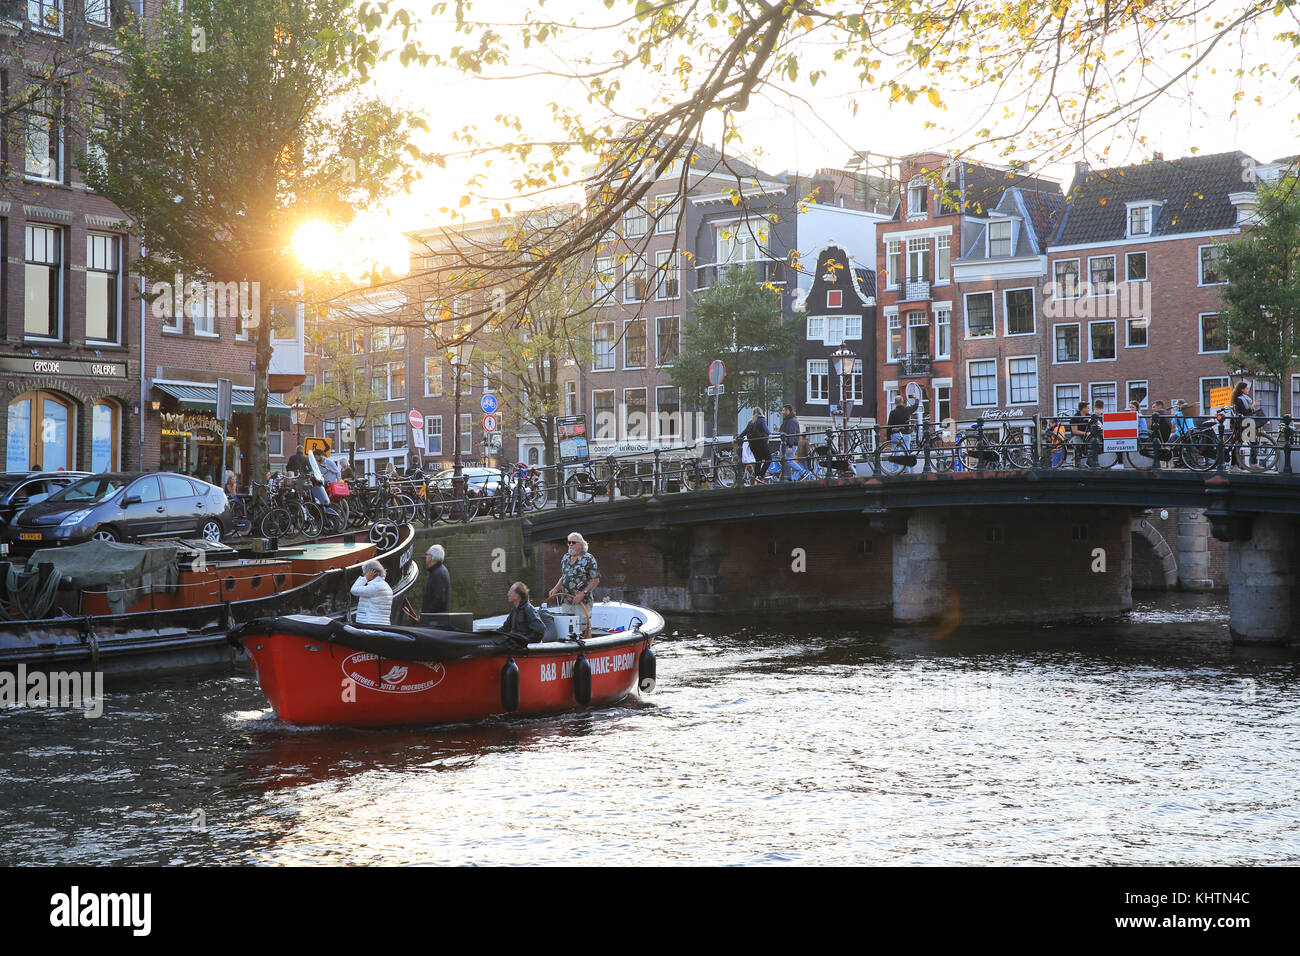 The Prinsengracht canal, in Autumn, in Amsterdam, the Netherlands - Stock Image